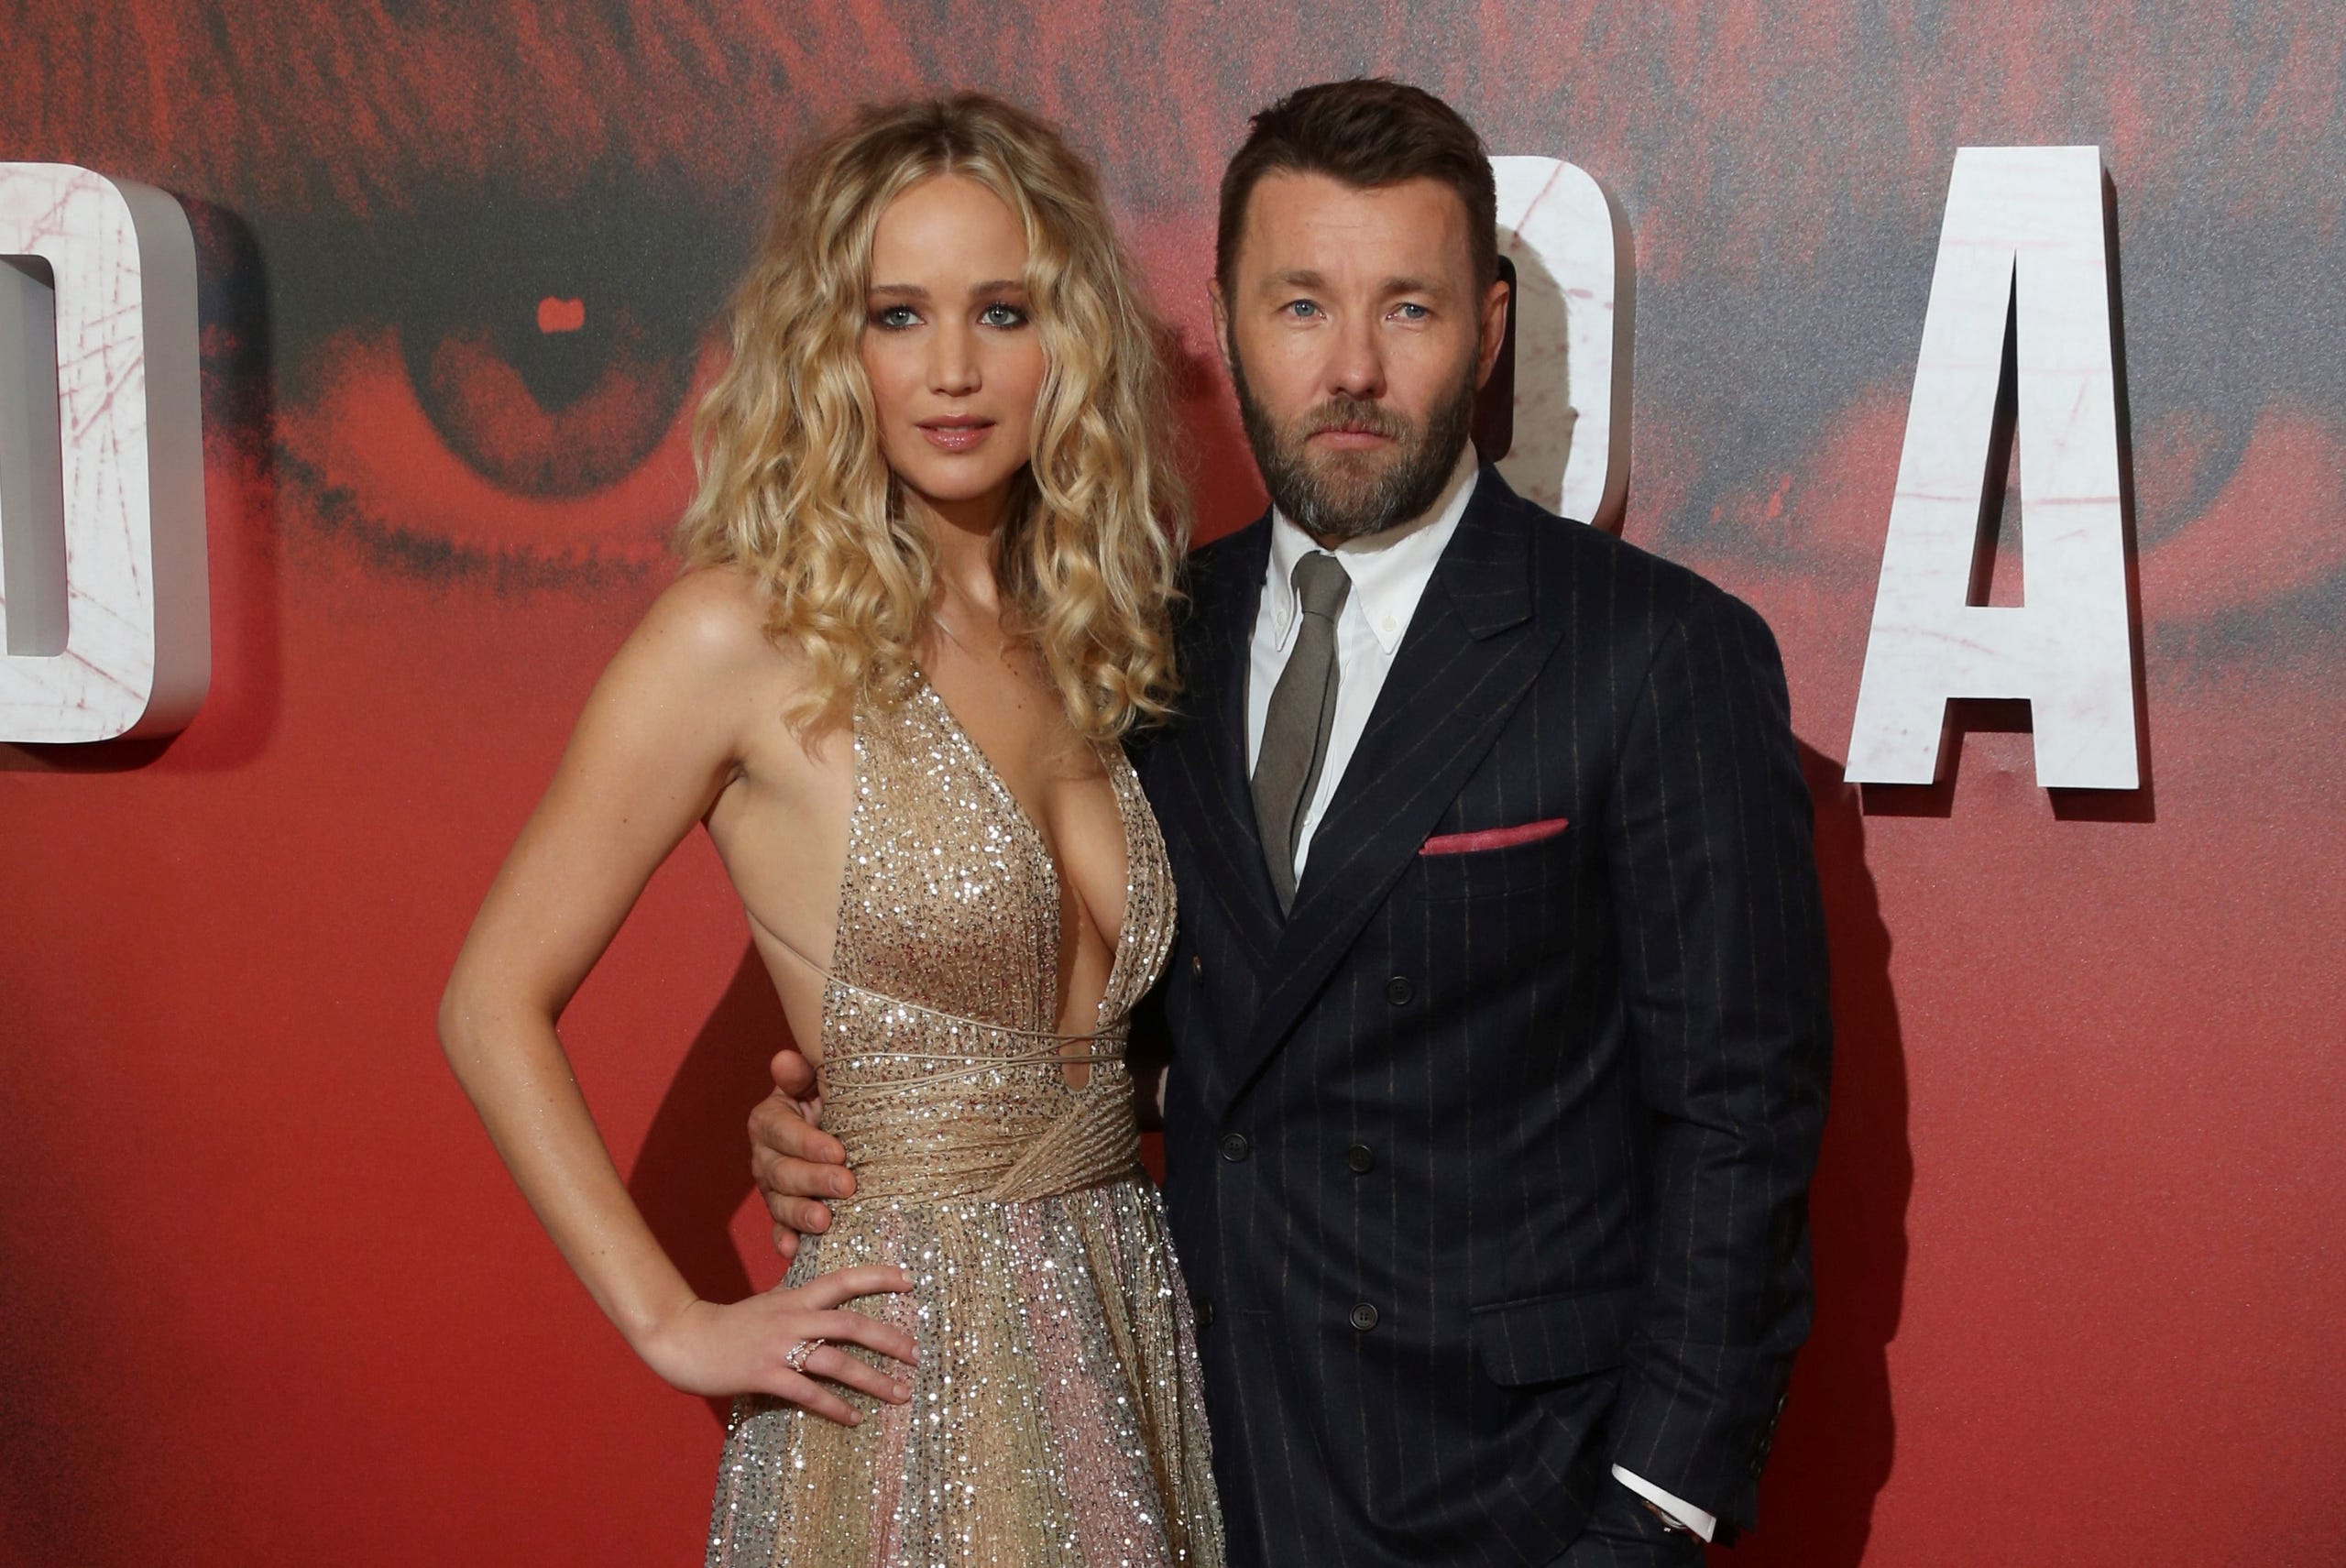 Photos of actress Jennifer Lawrence and 'Red Sparrow' movie stars